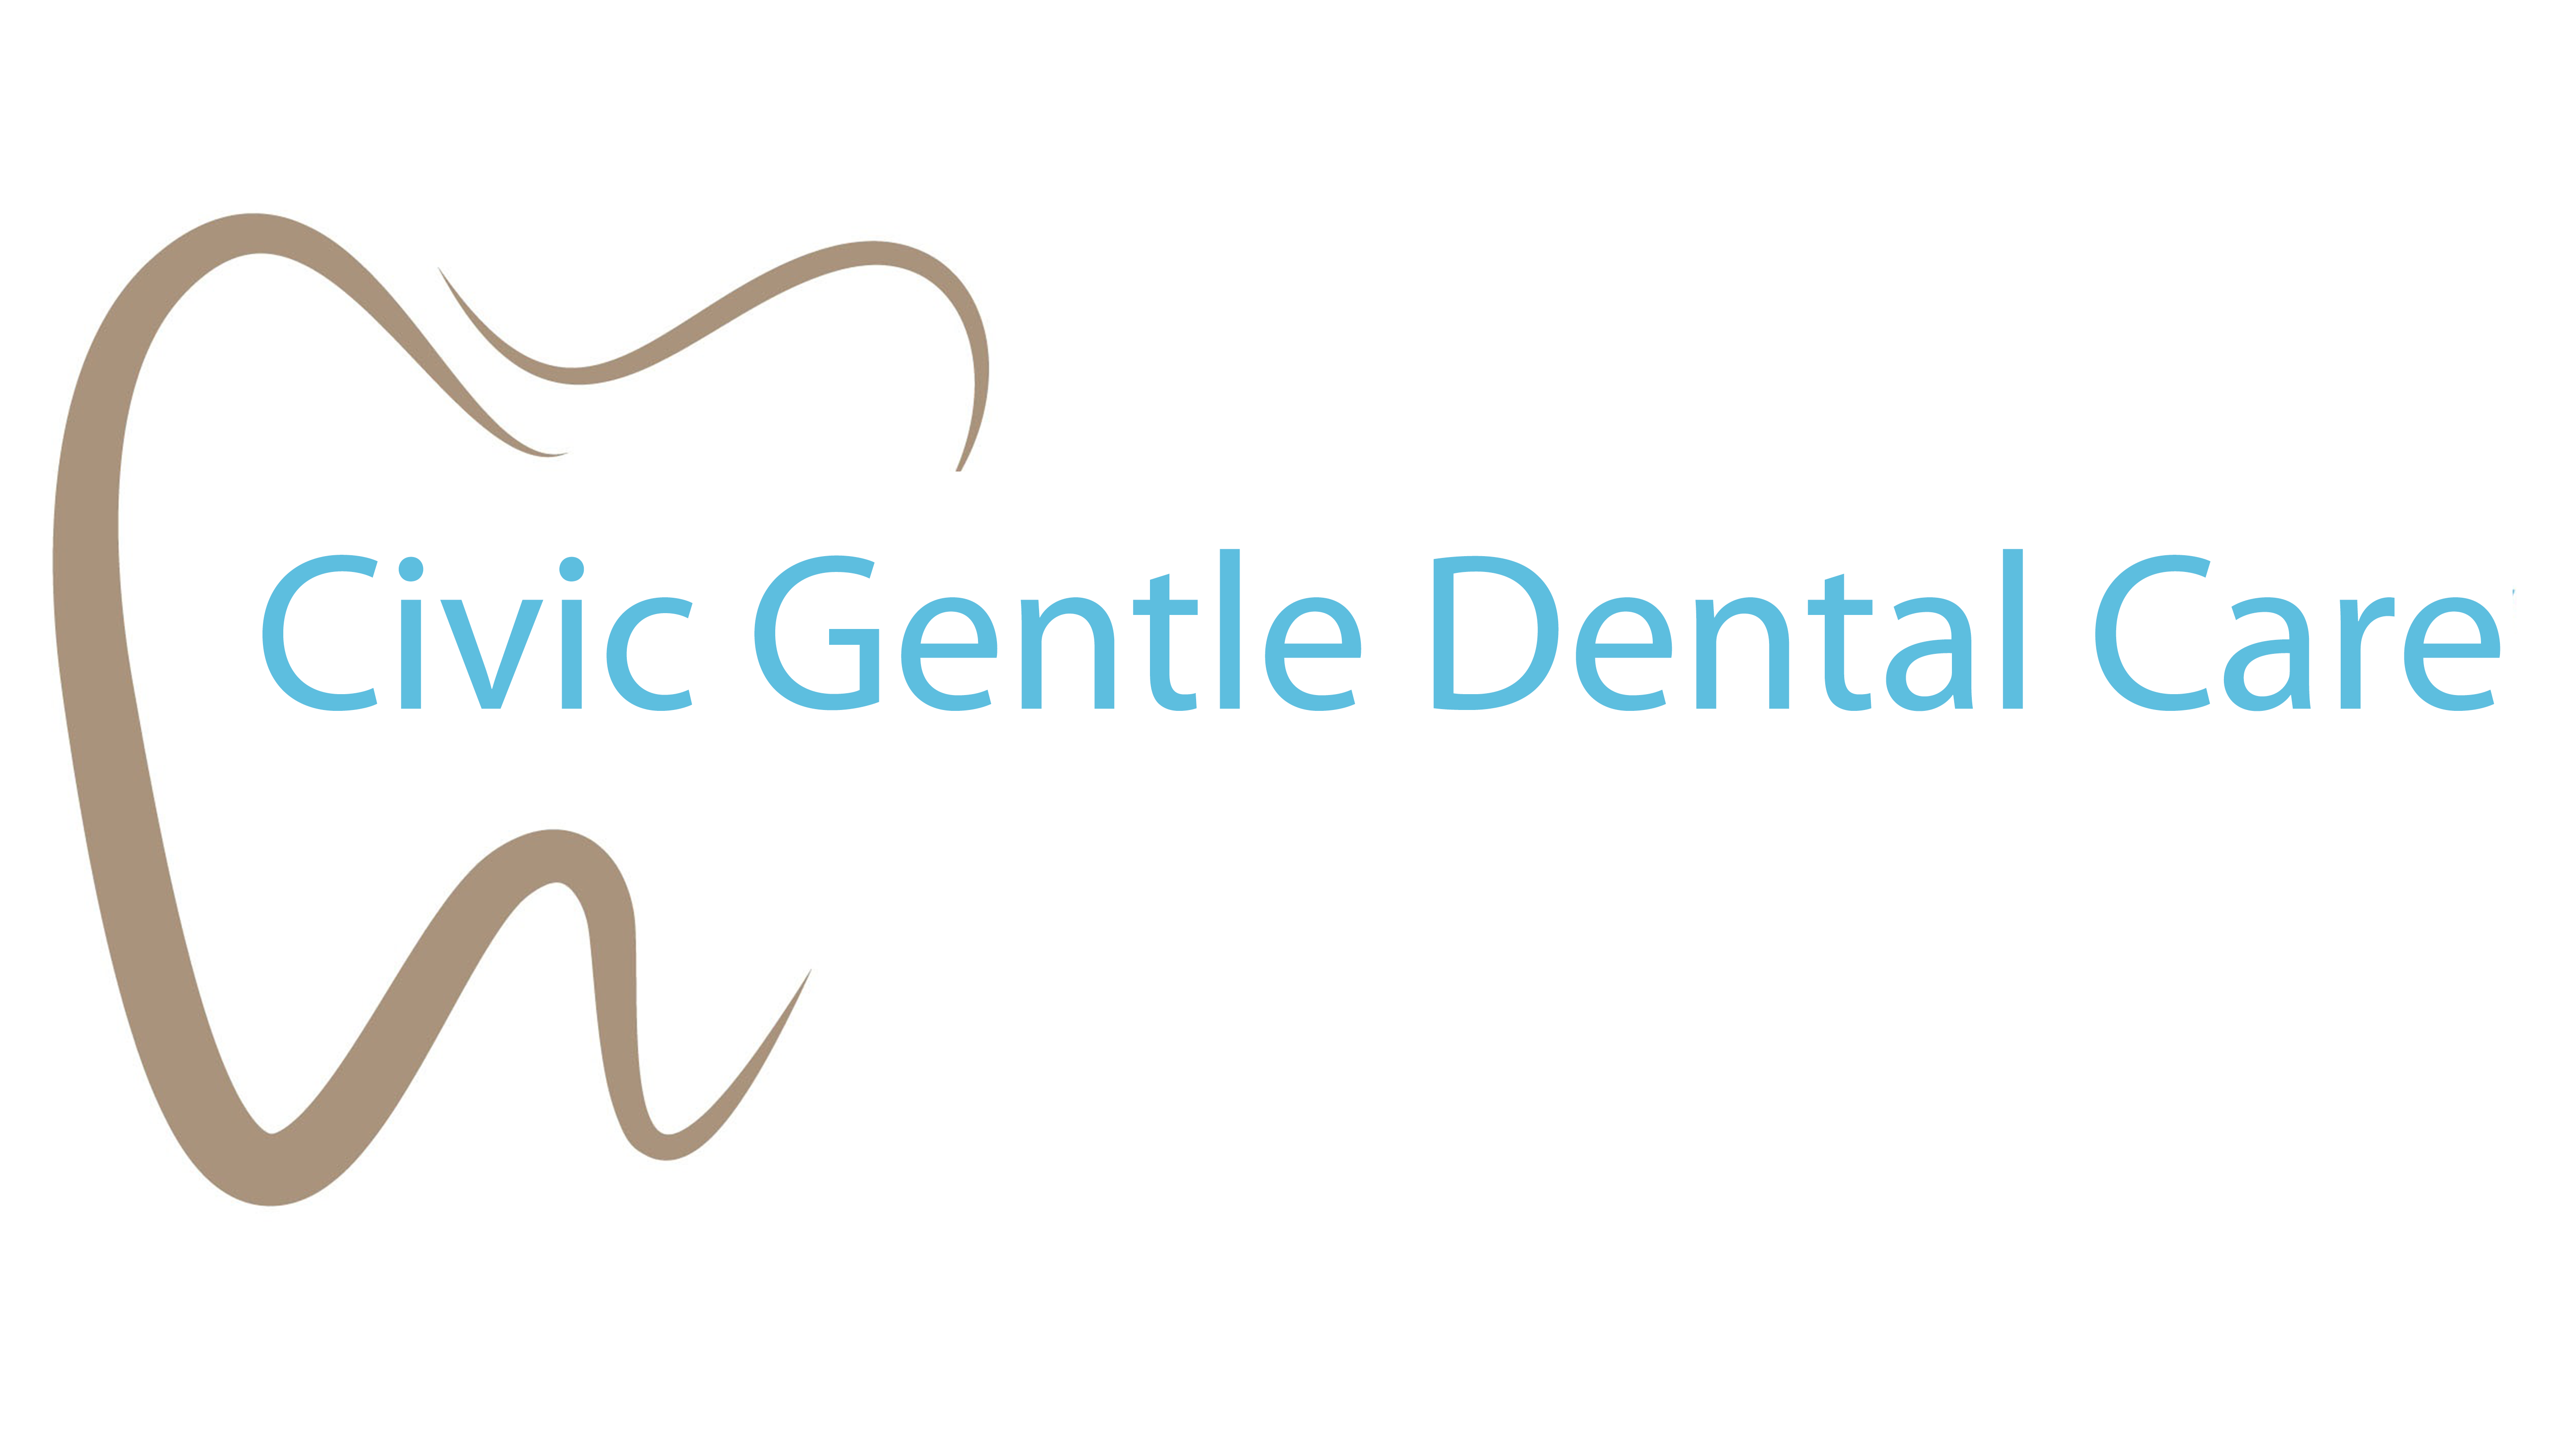 Civic_gentle_dental_care